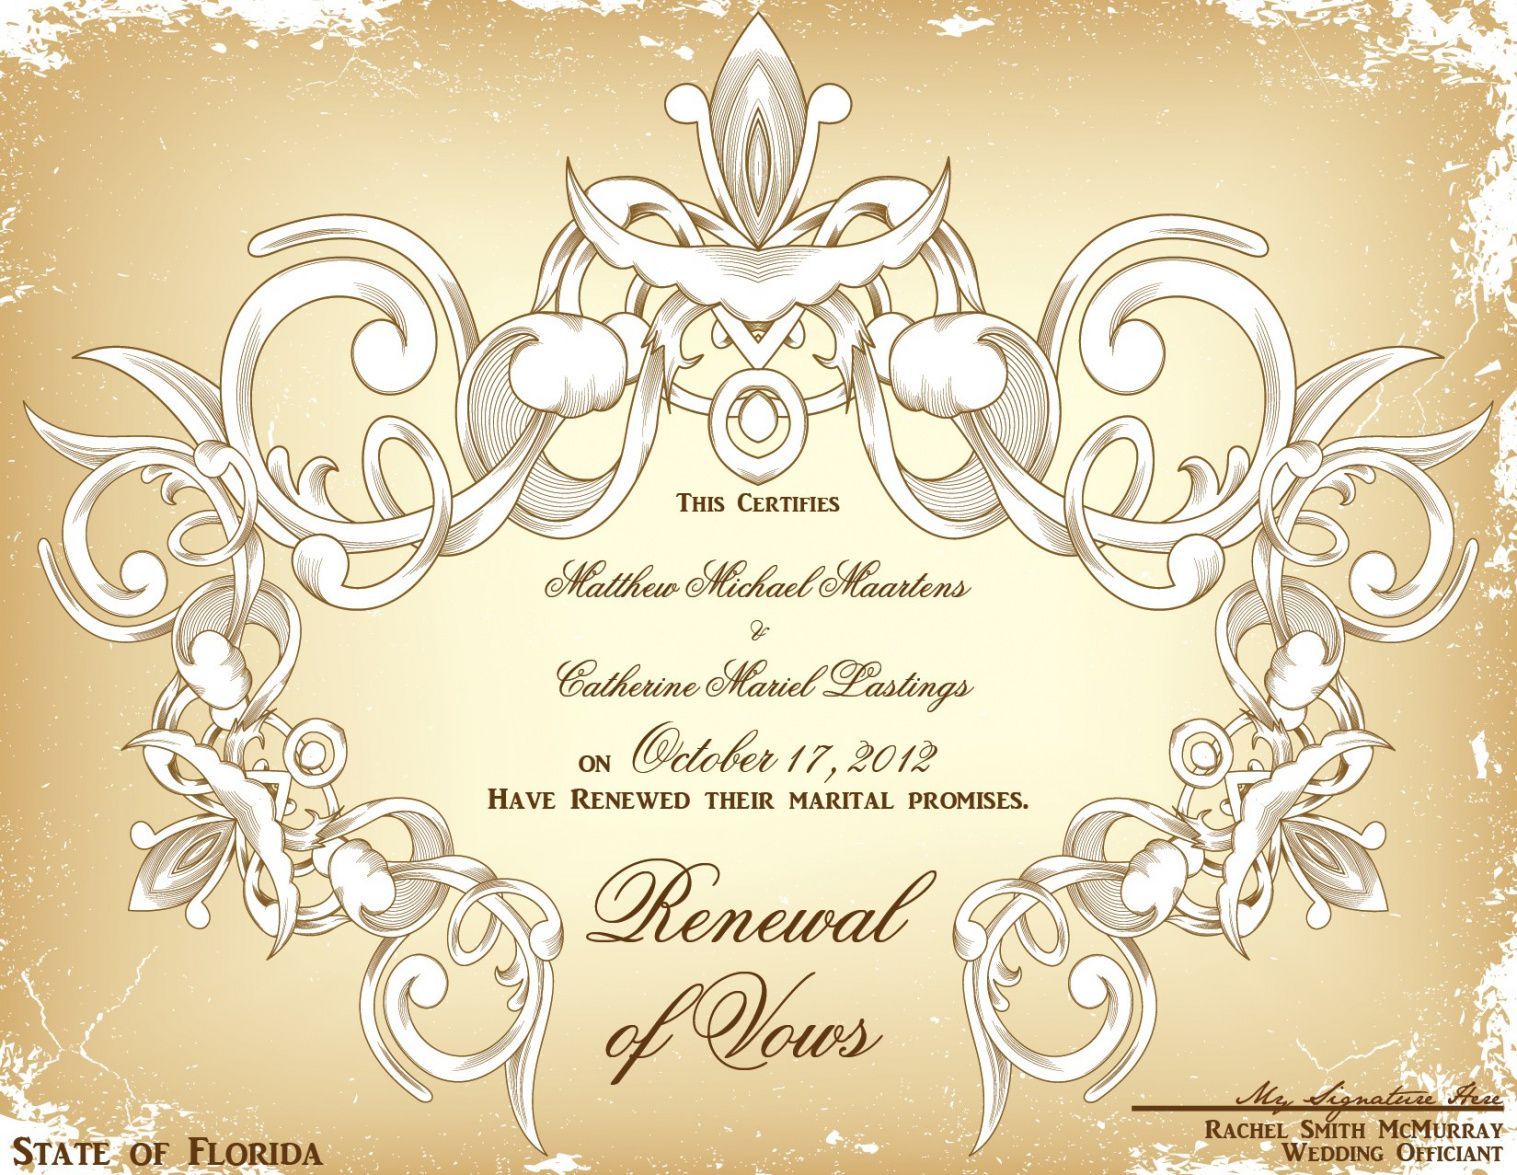 vow renewal certificate template. baby blessing certificates renewal of marriage vows certificate template